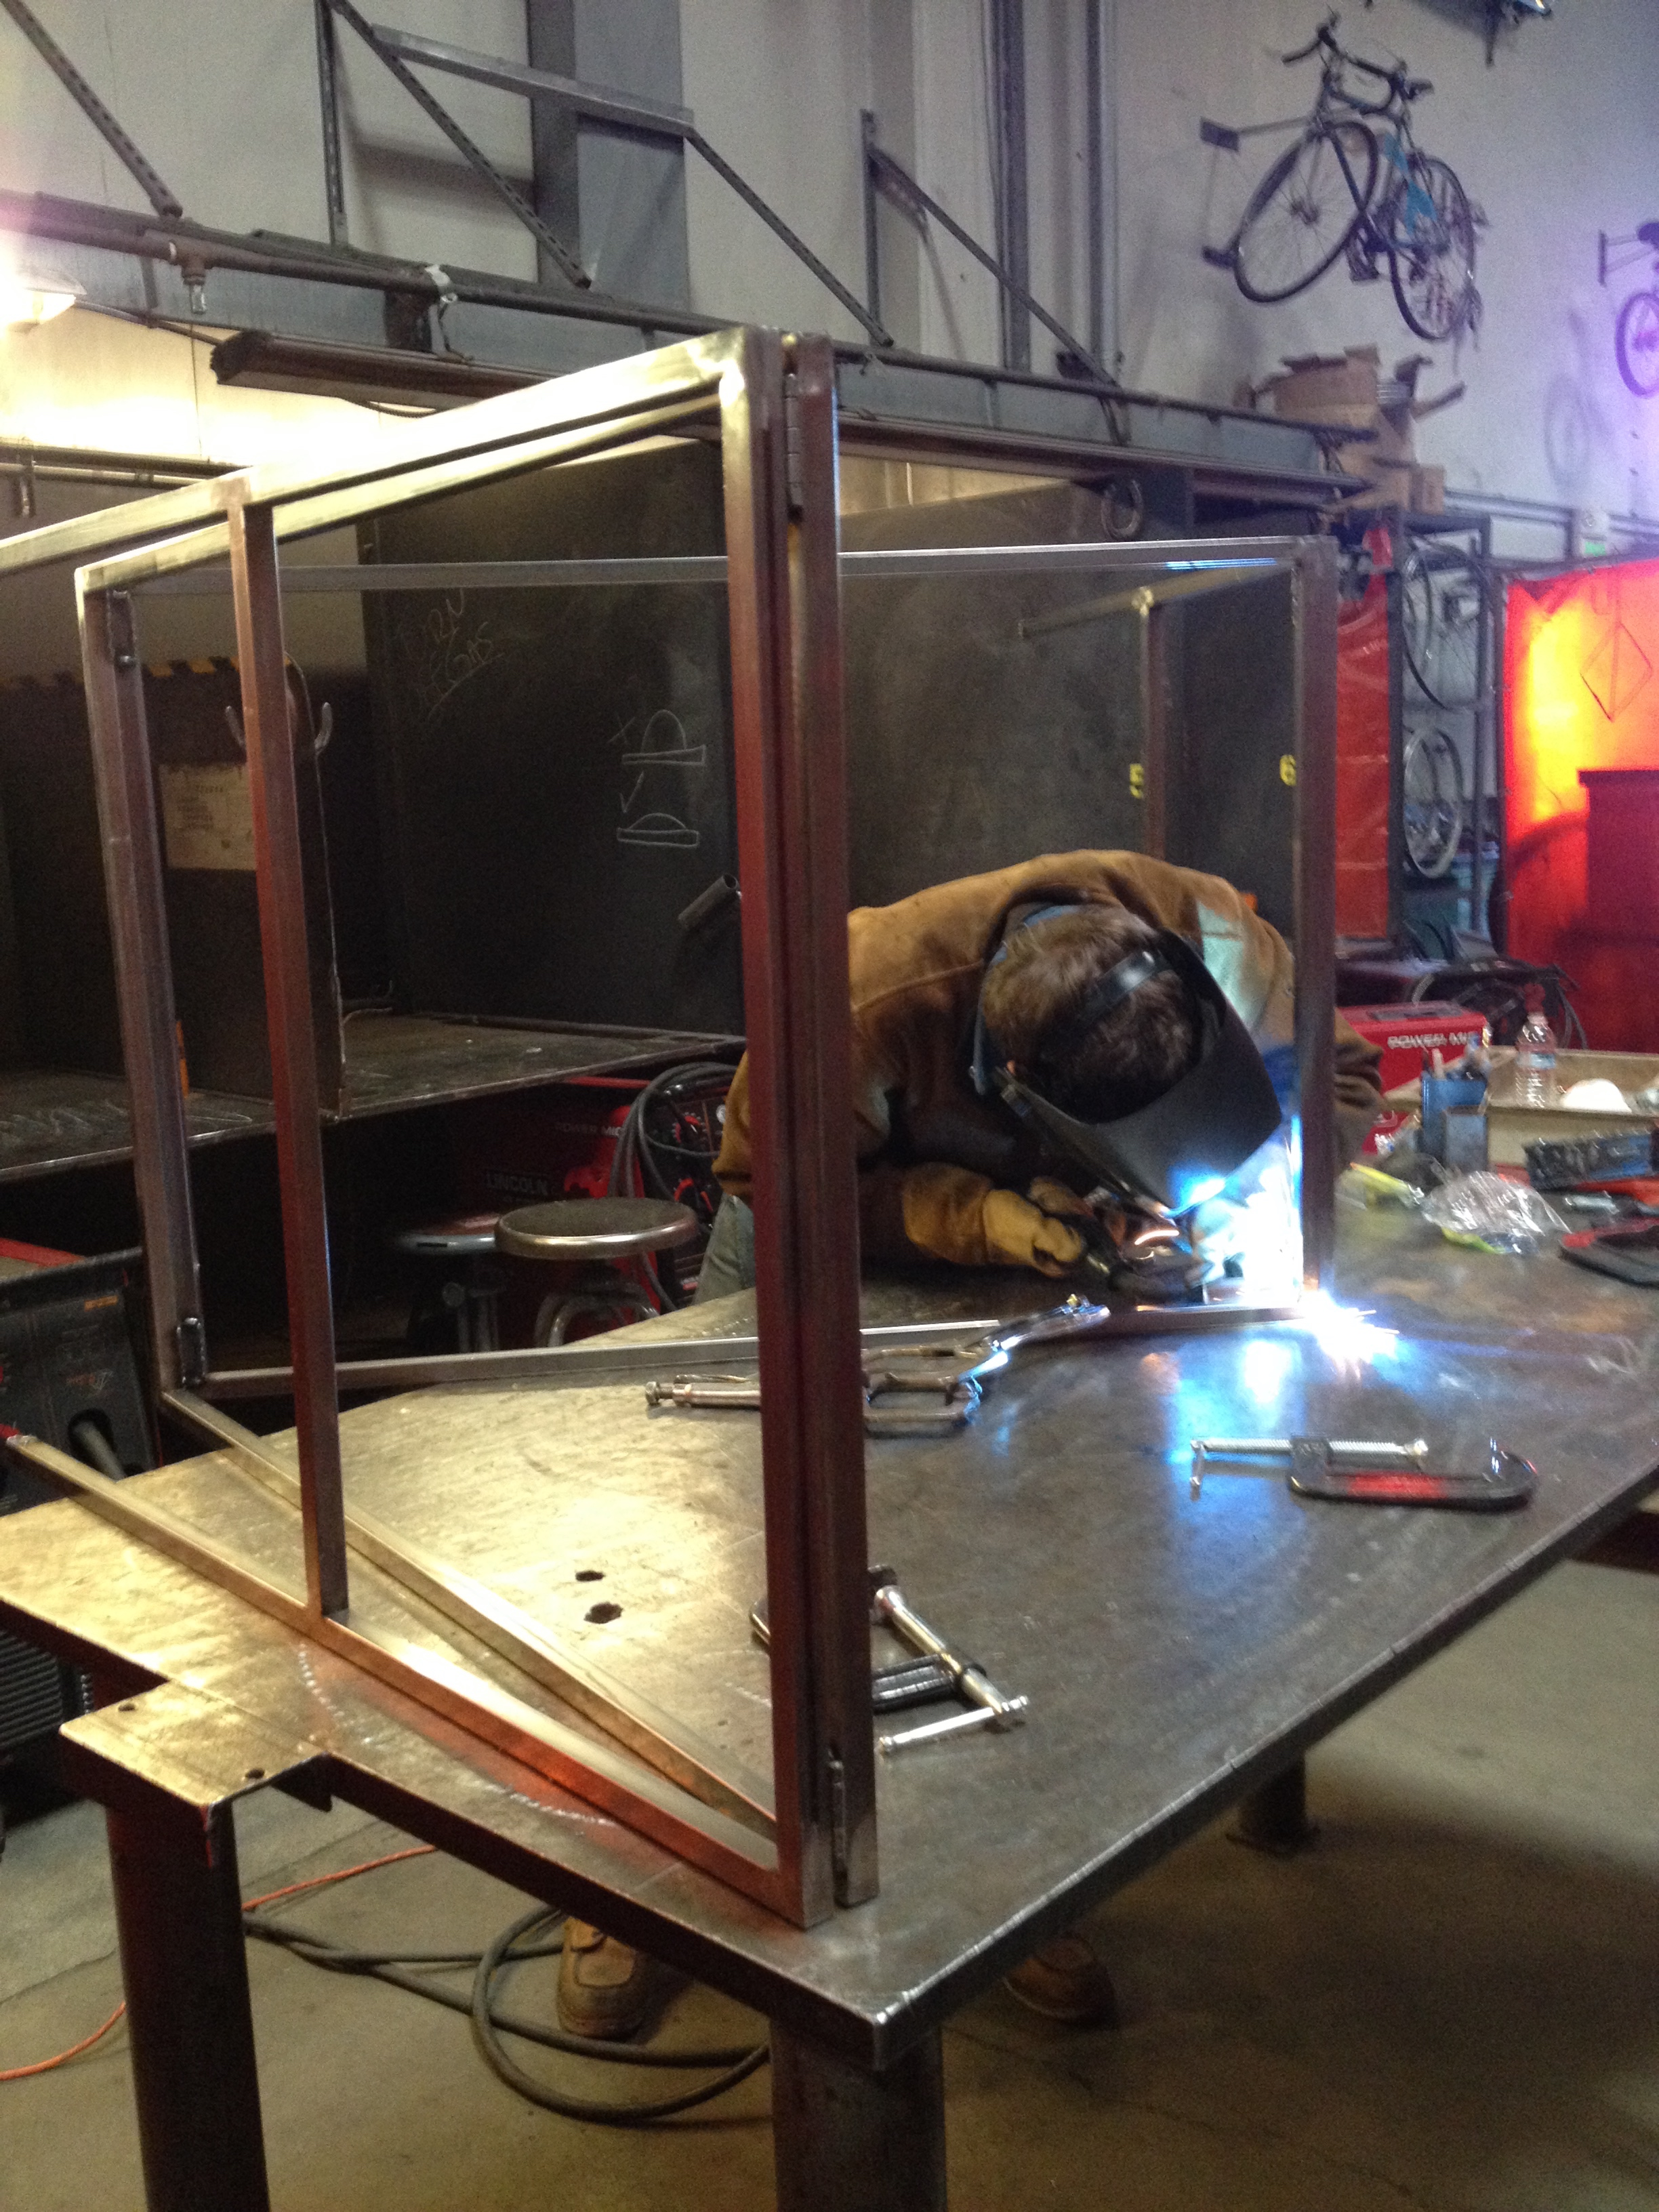 With the four frames completed, the next step was welding them together with the hinges.